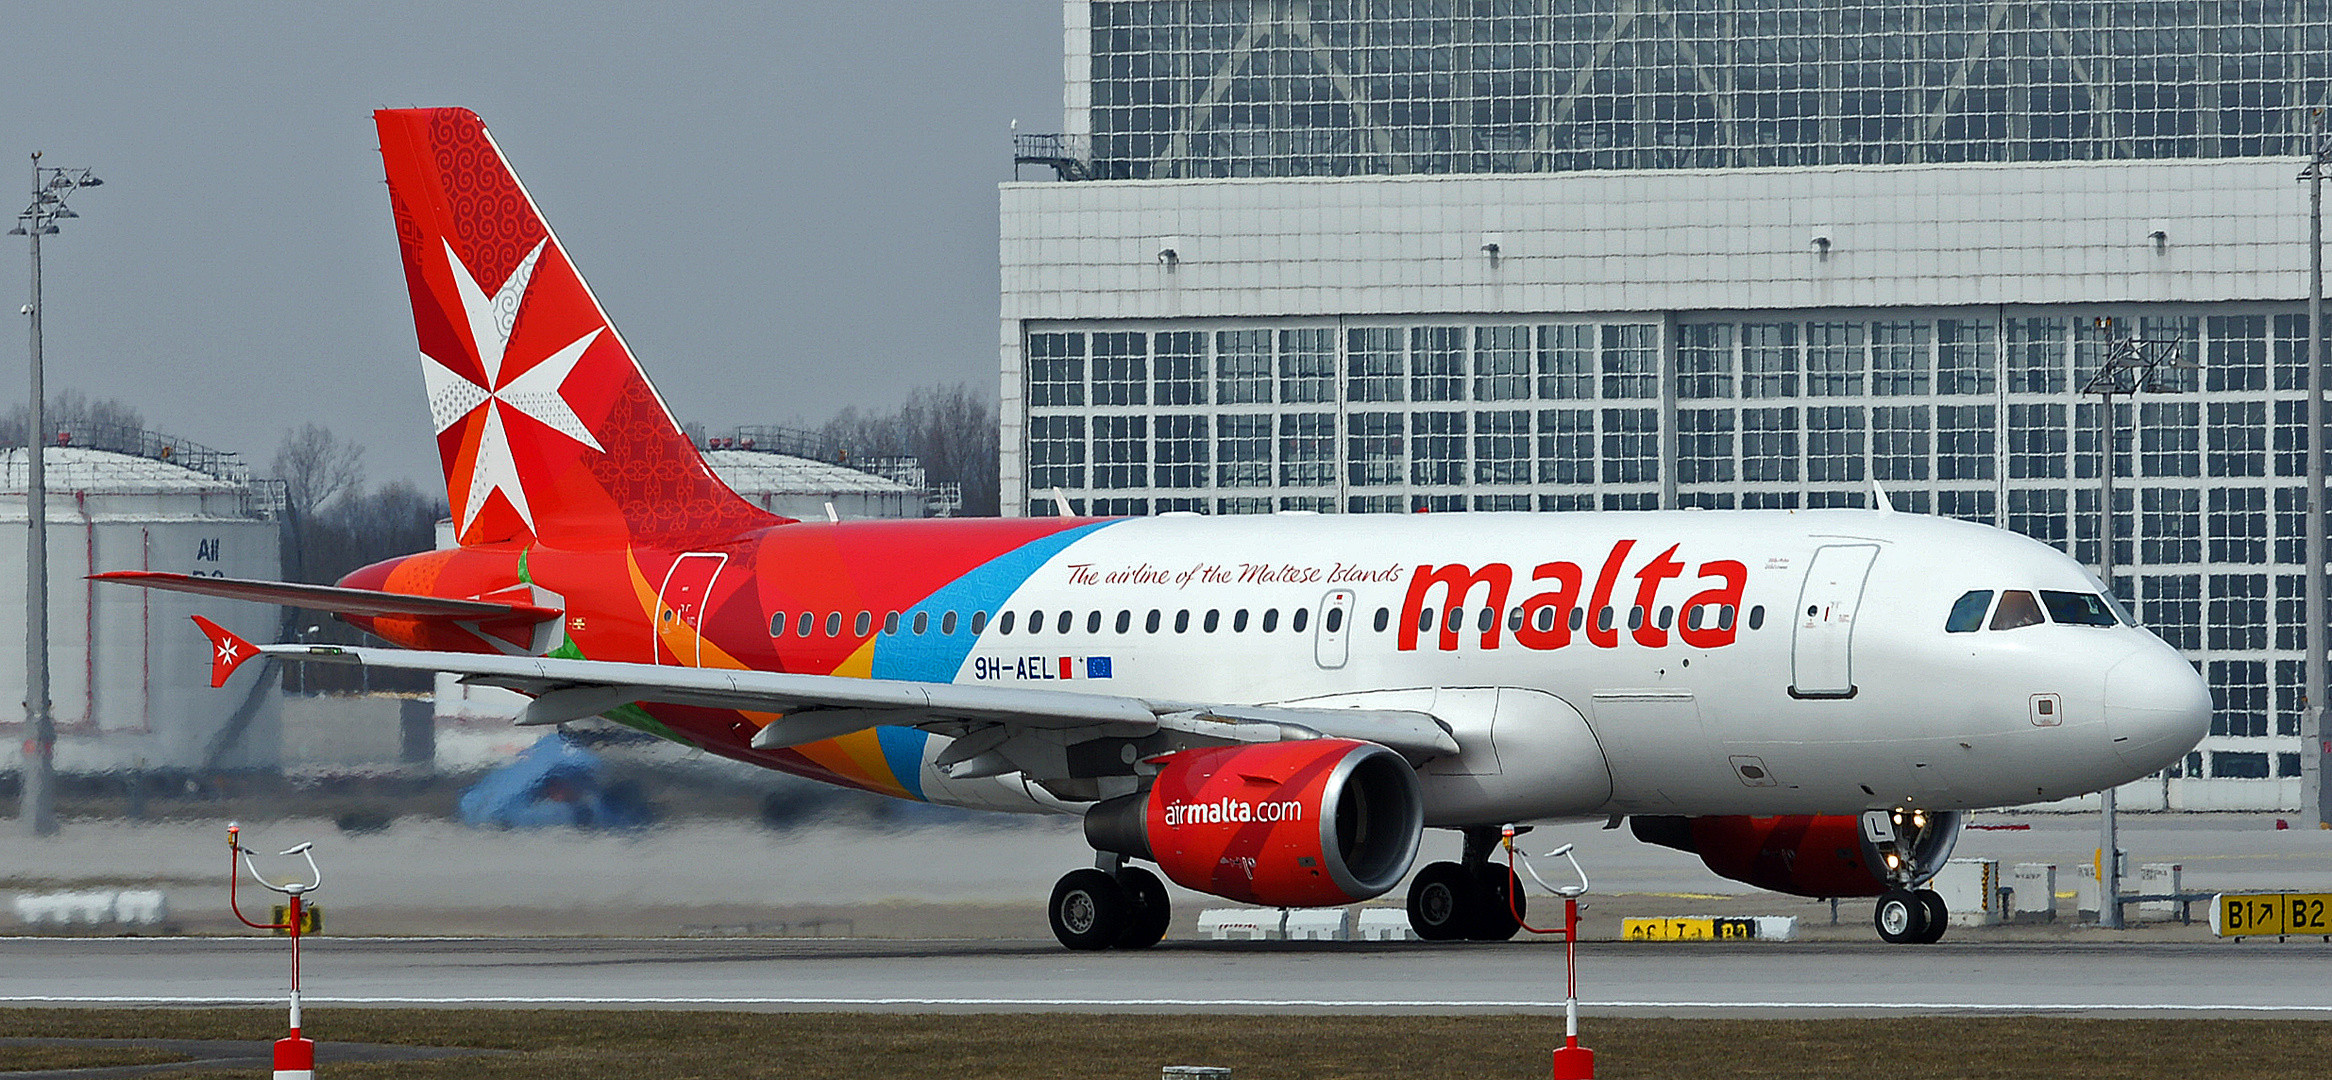 THE AIRLINE OF THE MALTESE ISLAND